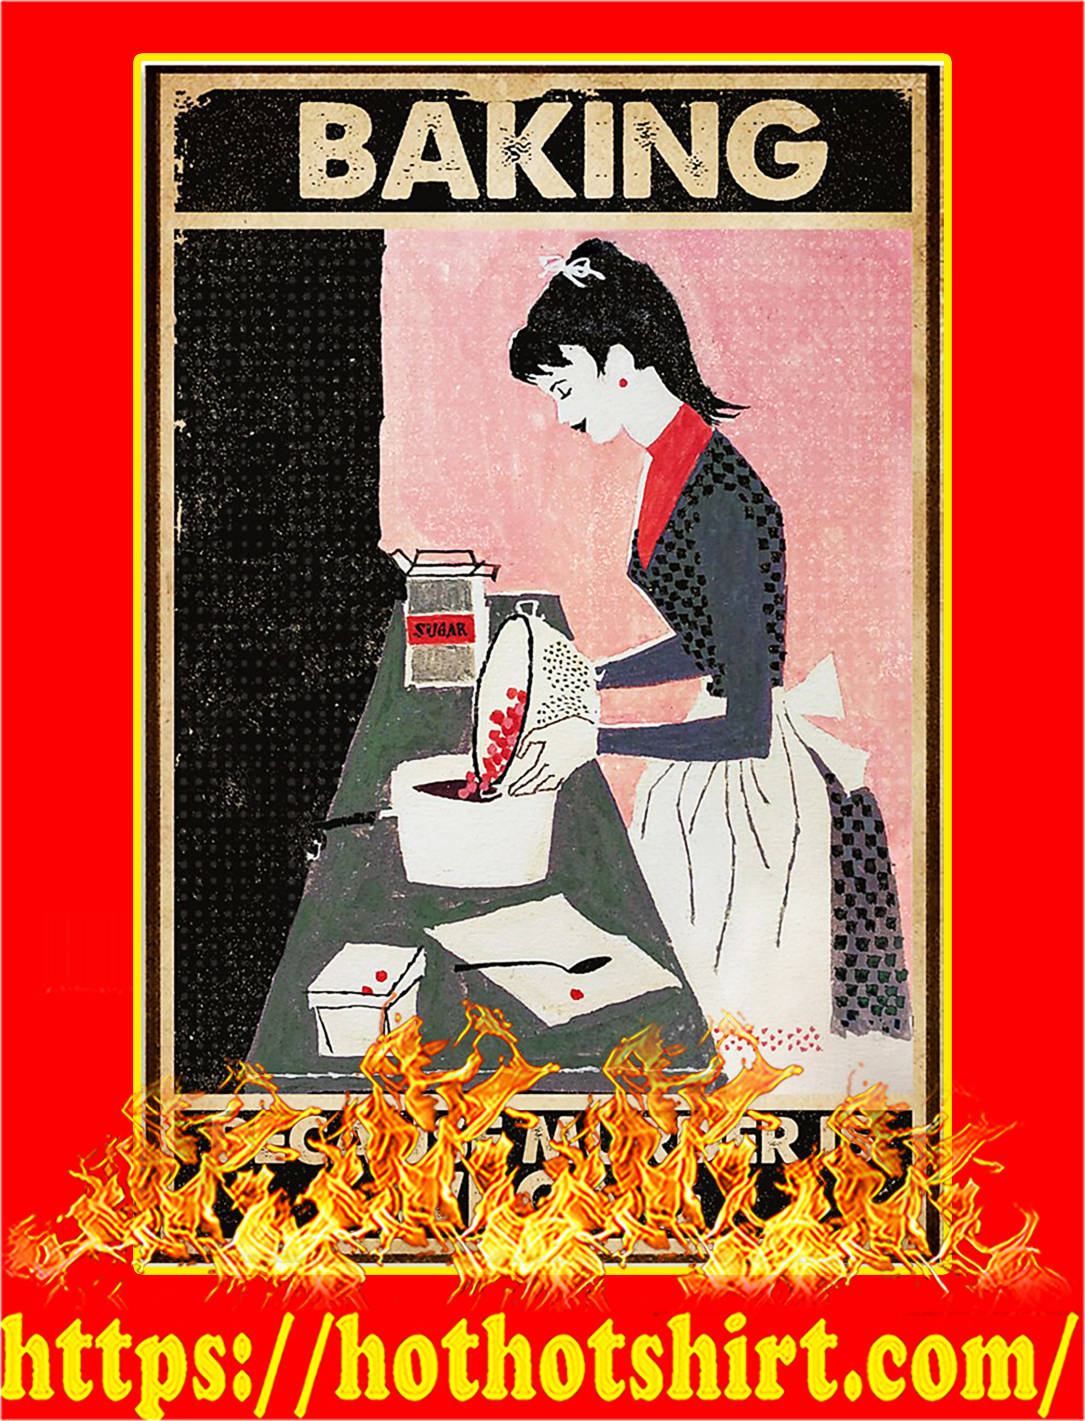 Baking because muder is wrong poster - A1